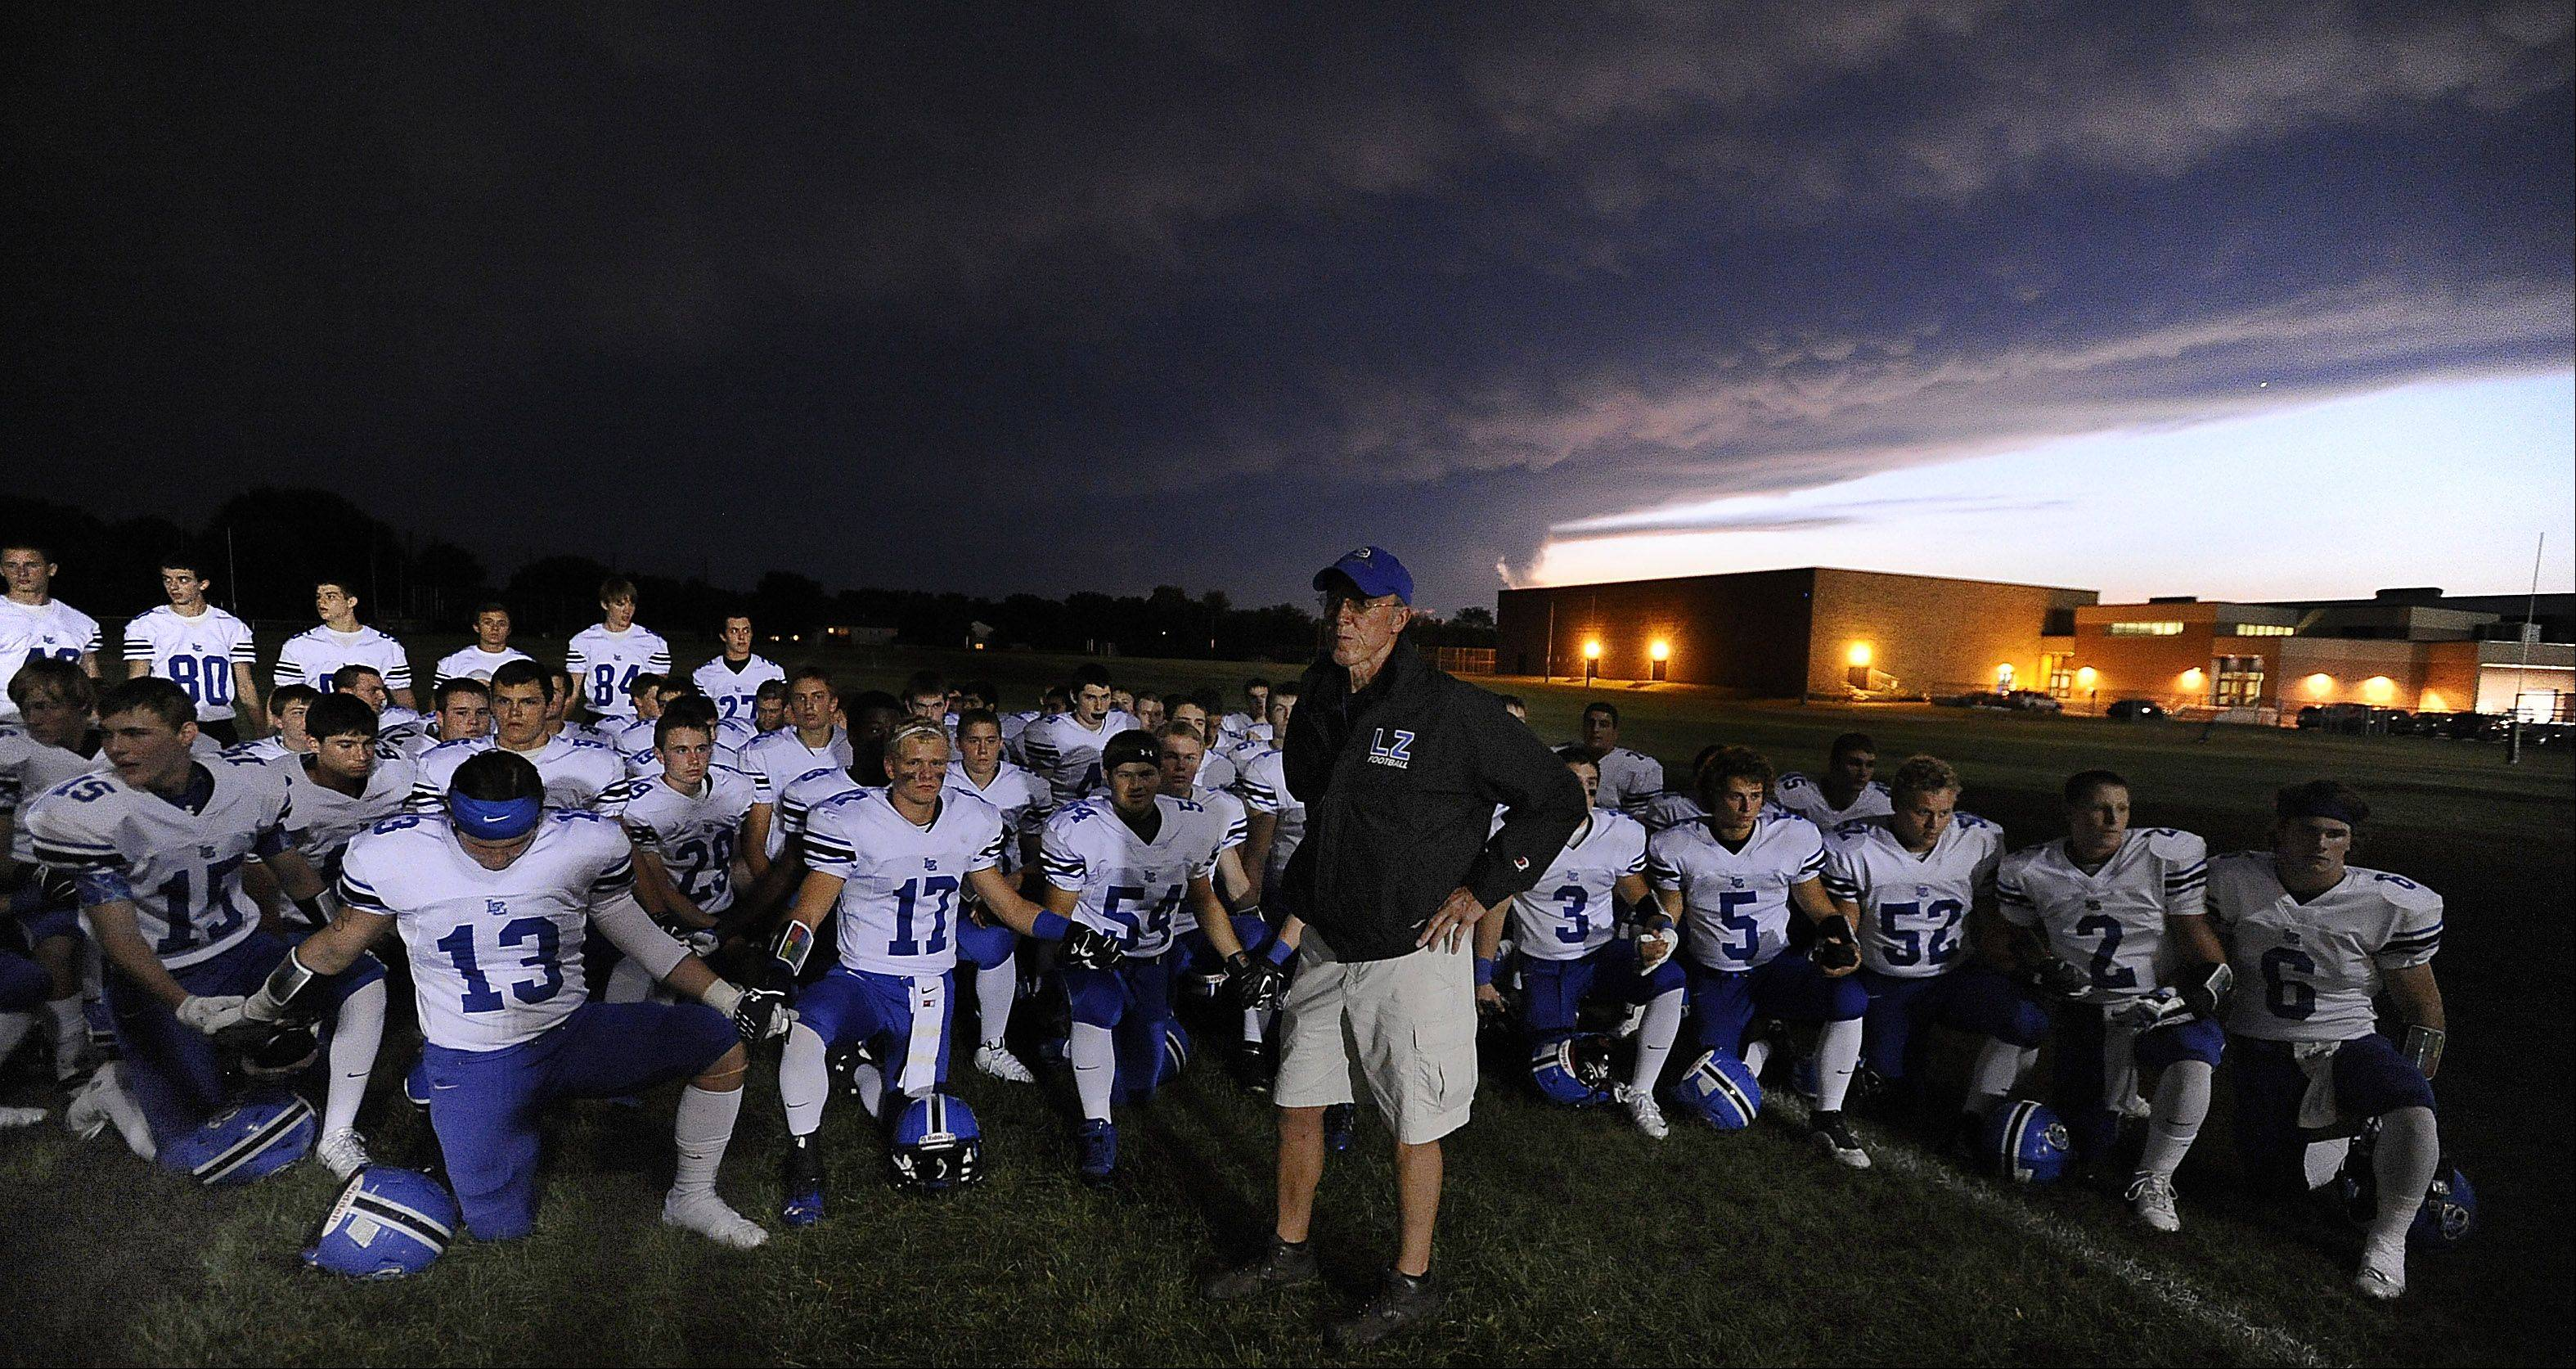 Mark Welsh/mwelsh@dailyherald.comLake Zurich coach Dave Proffitt stands with his players before the game as storm clouds rumble overhead Friday at Fremd.